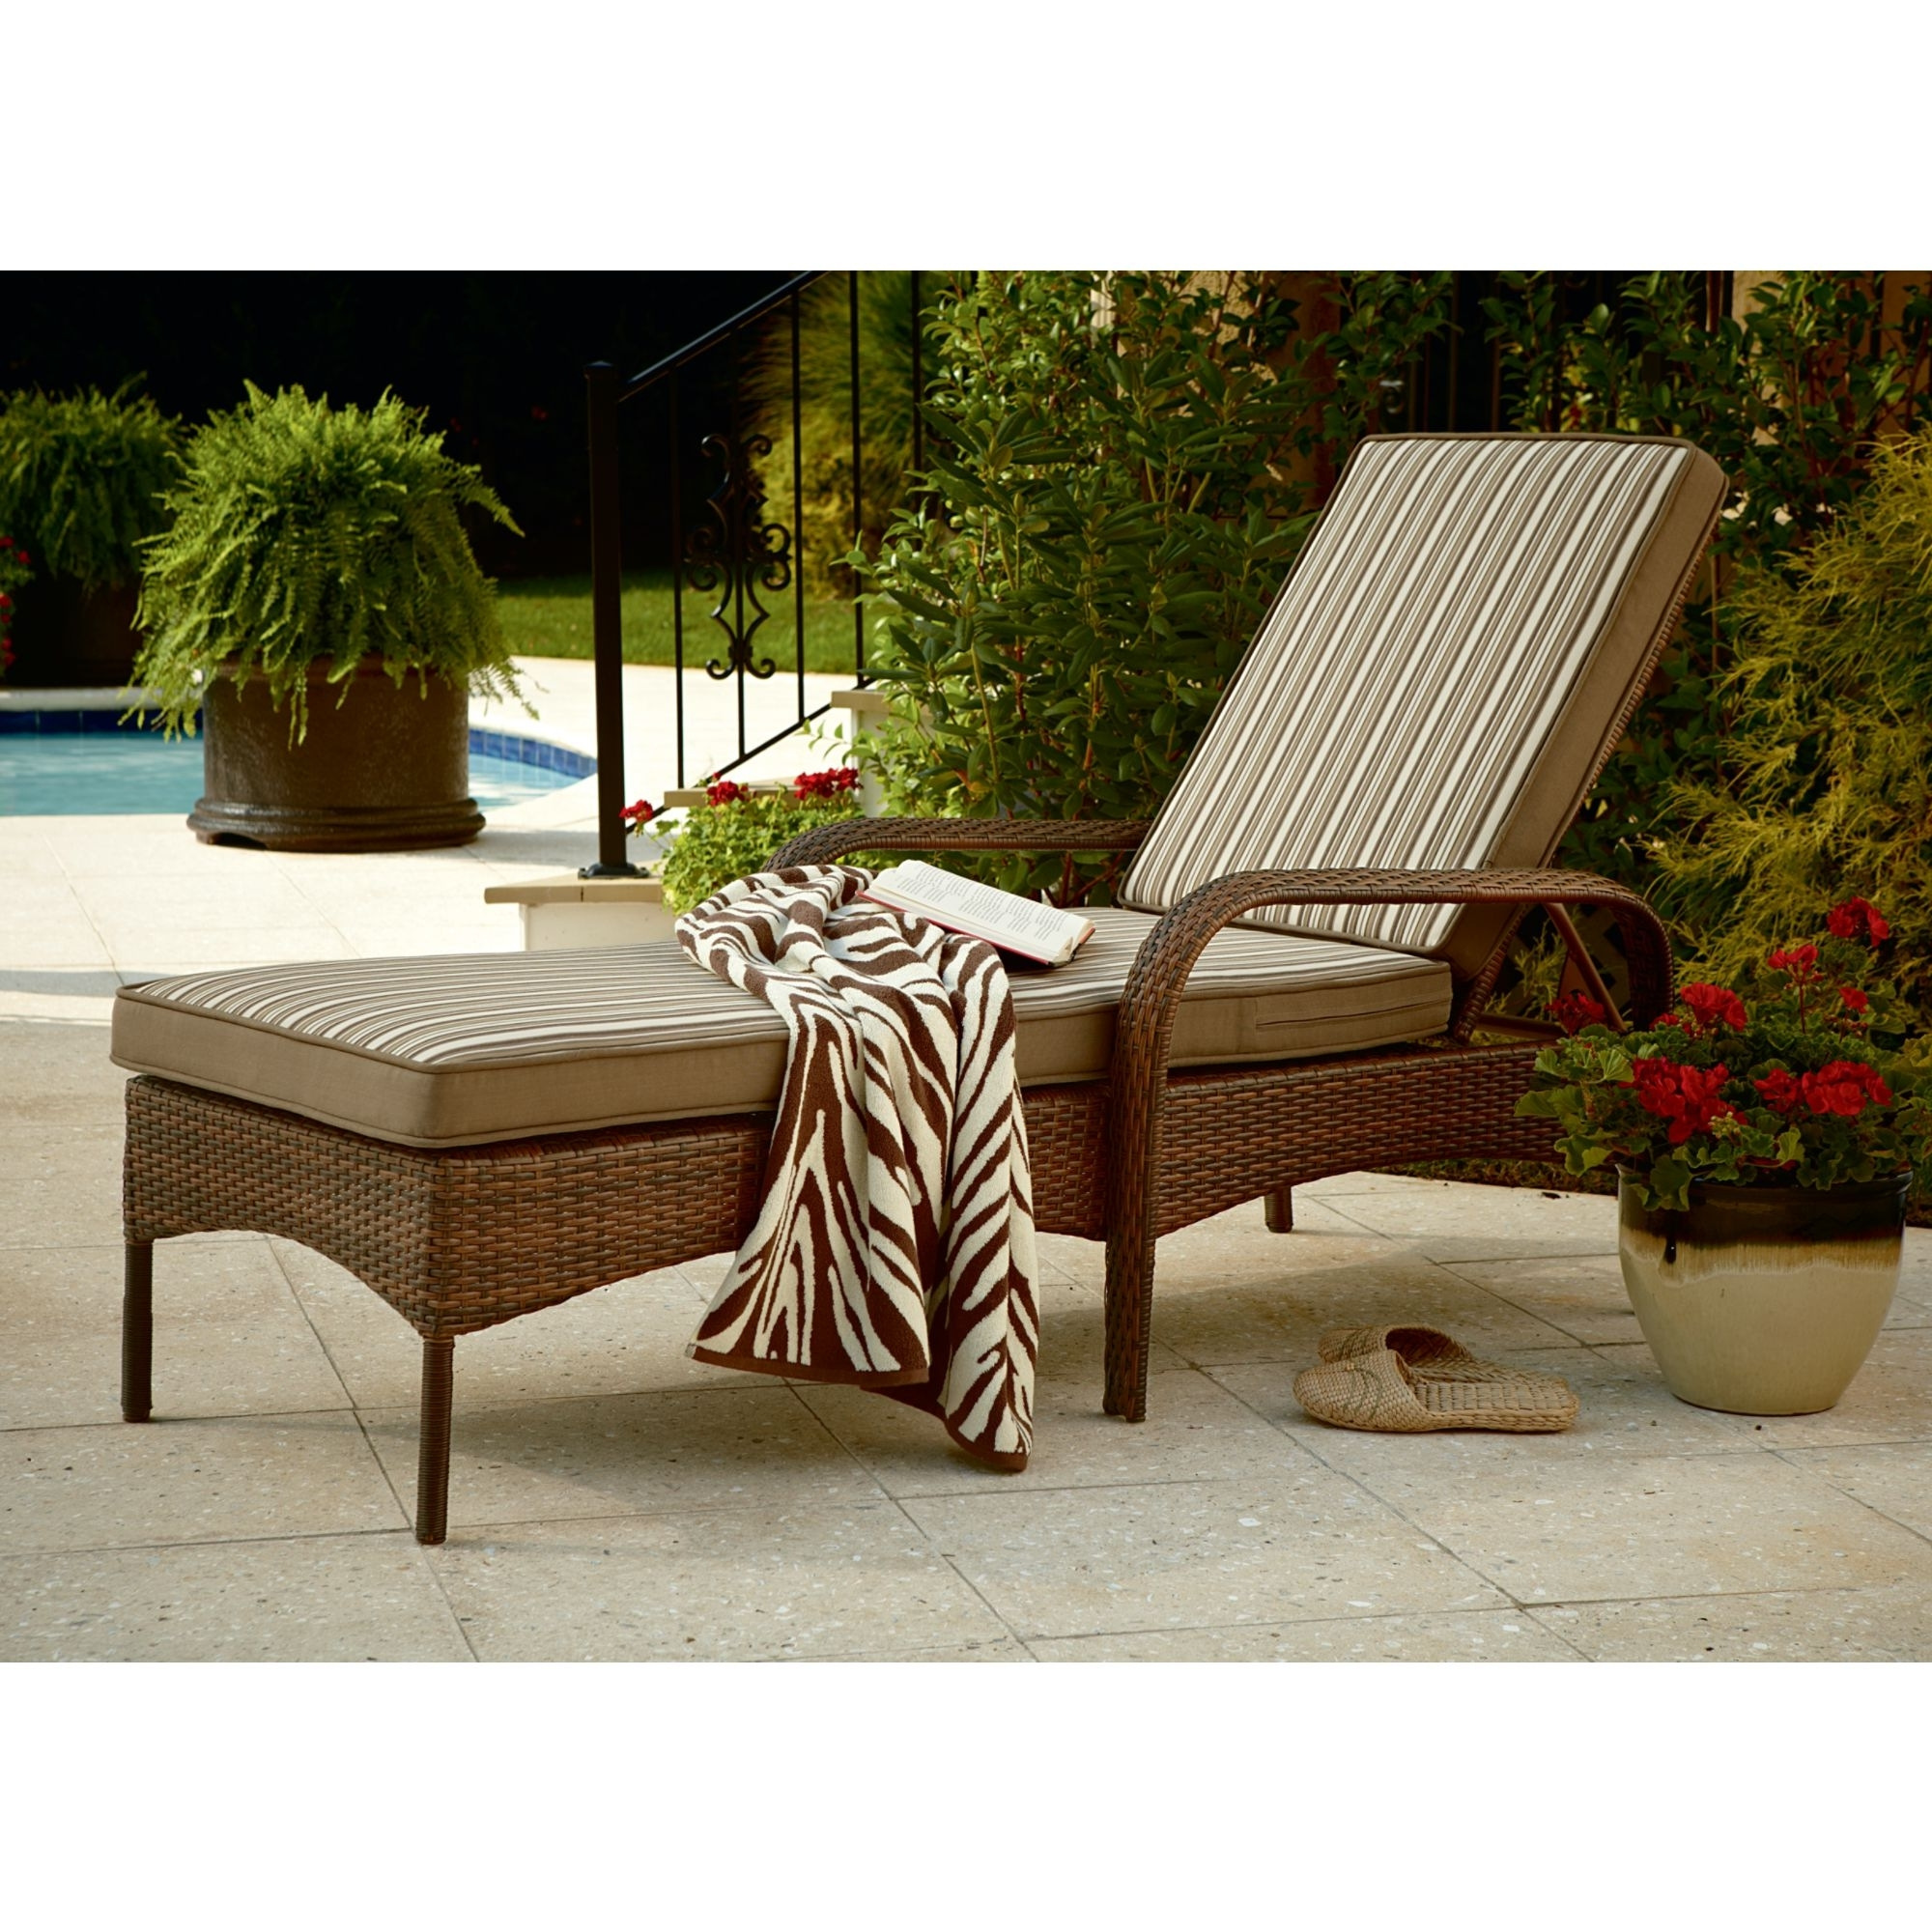 Widely Used Outdoor : Best Chaise Lounge Walmart Double Chaise Lounge Chaise With White Wicker Chaise Lounges (View 15 of 15)